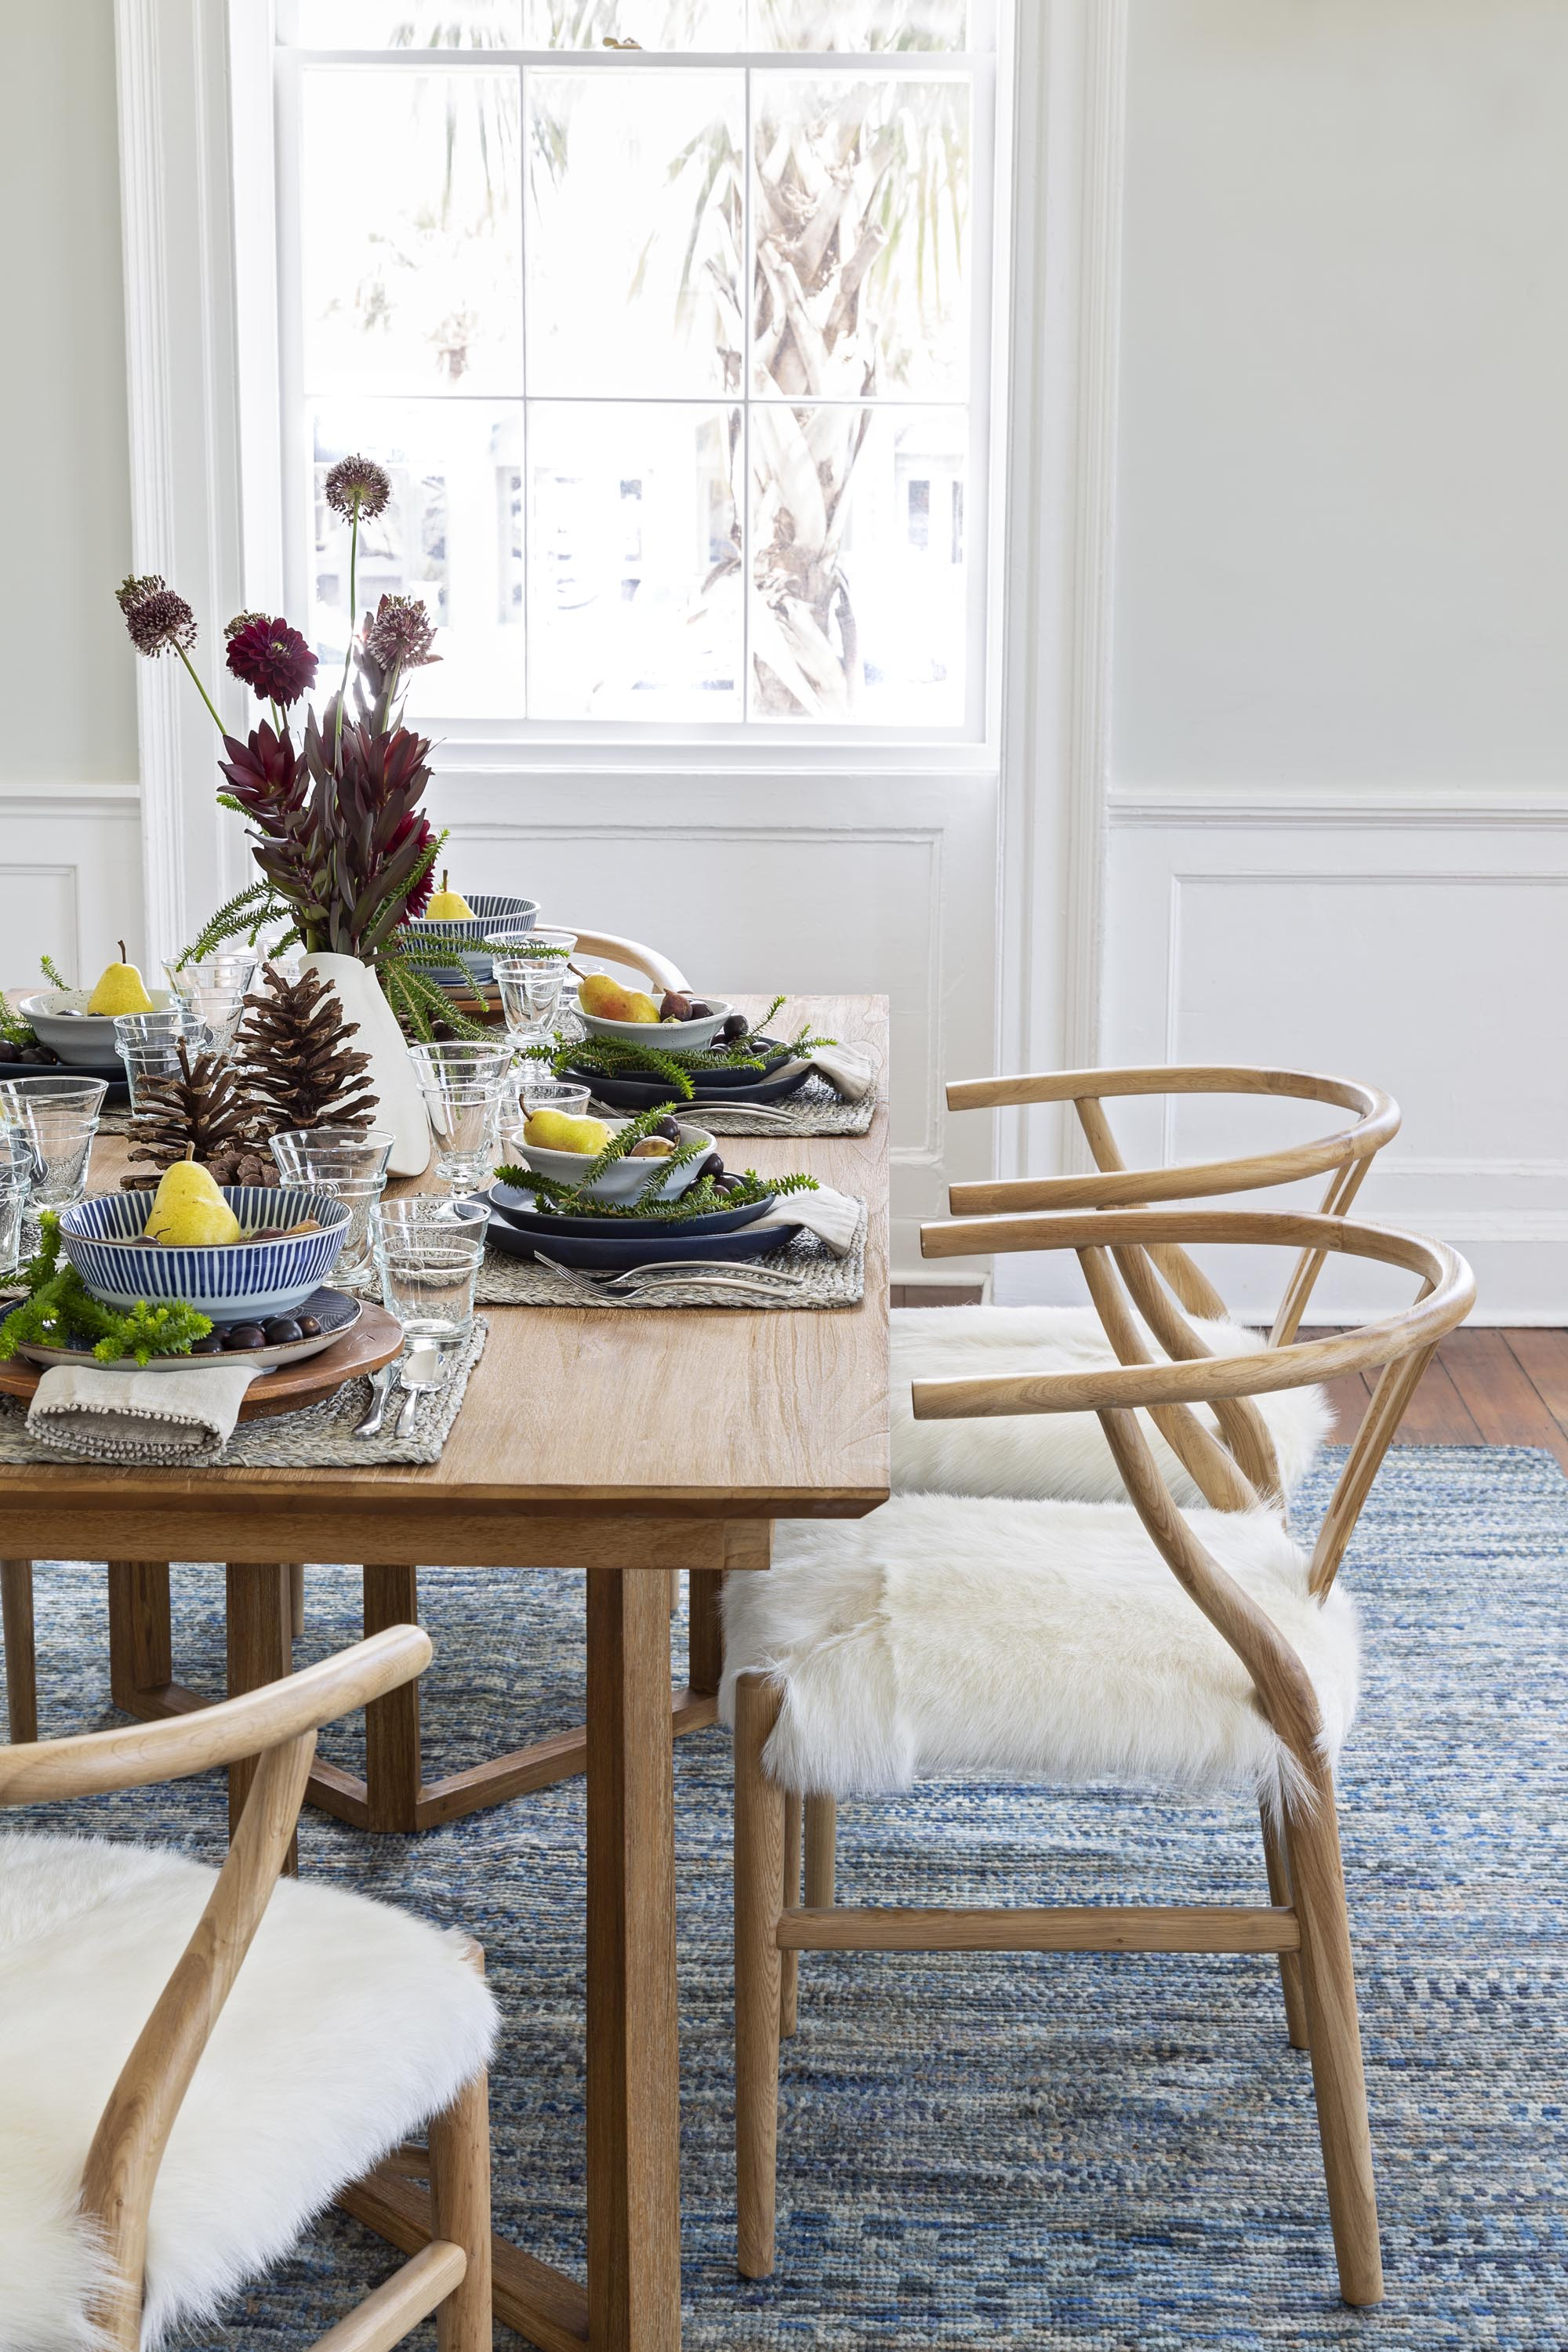 Gadsen dining room chairs with animal hide upholstered seat